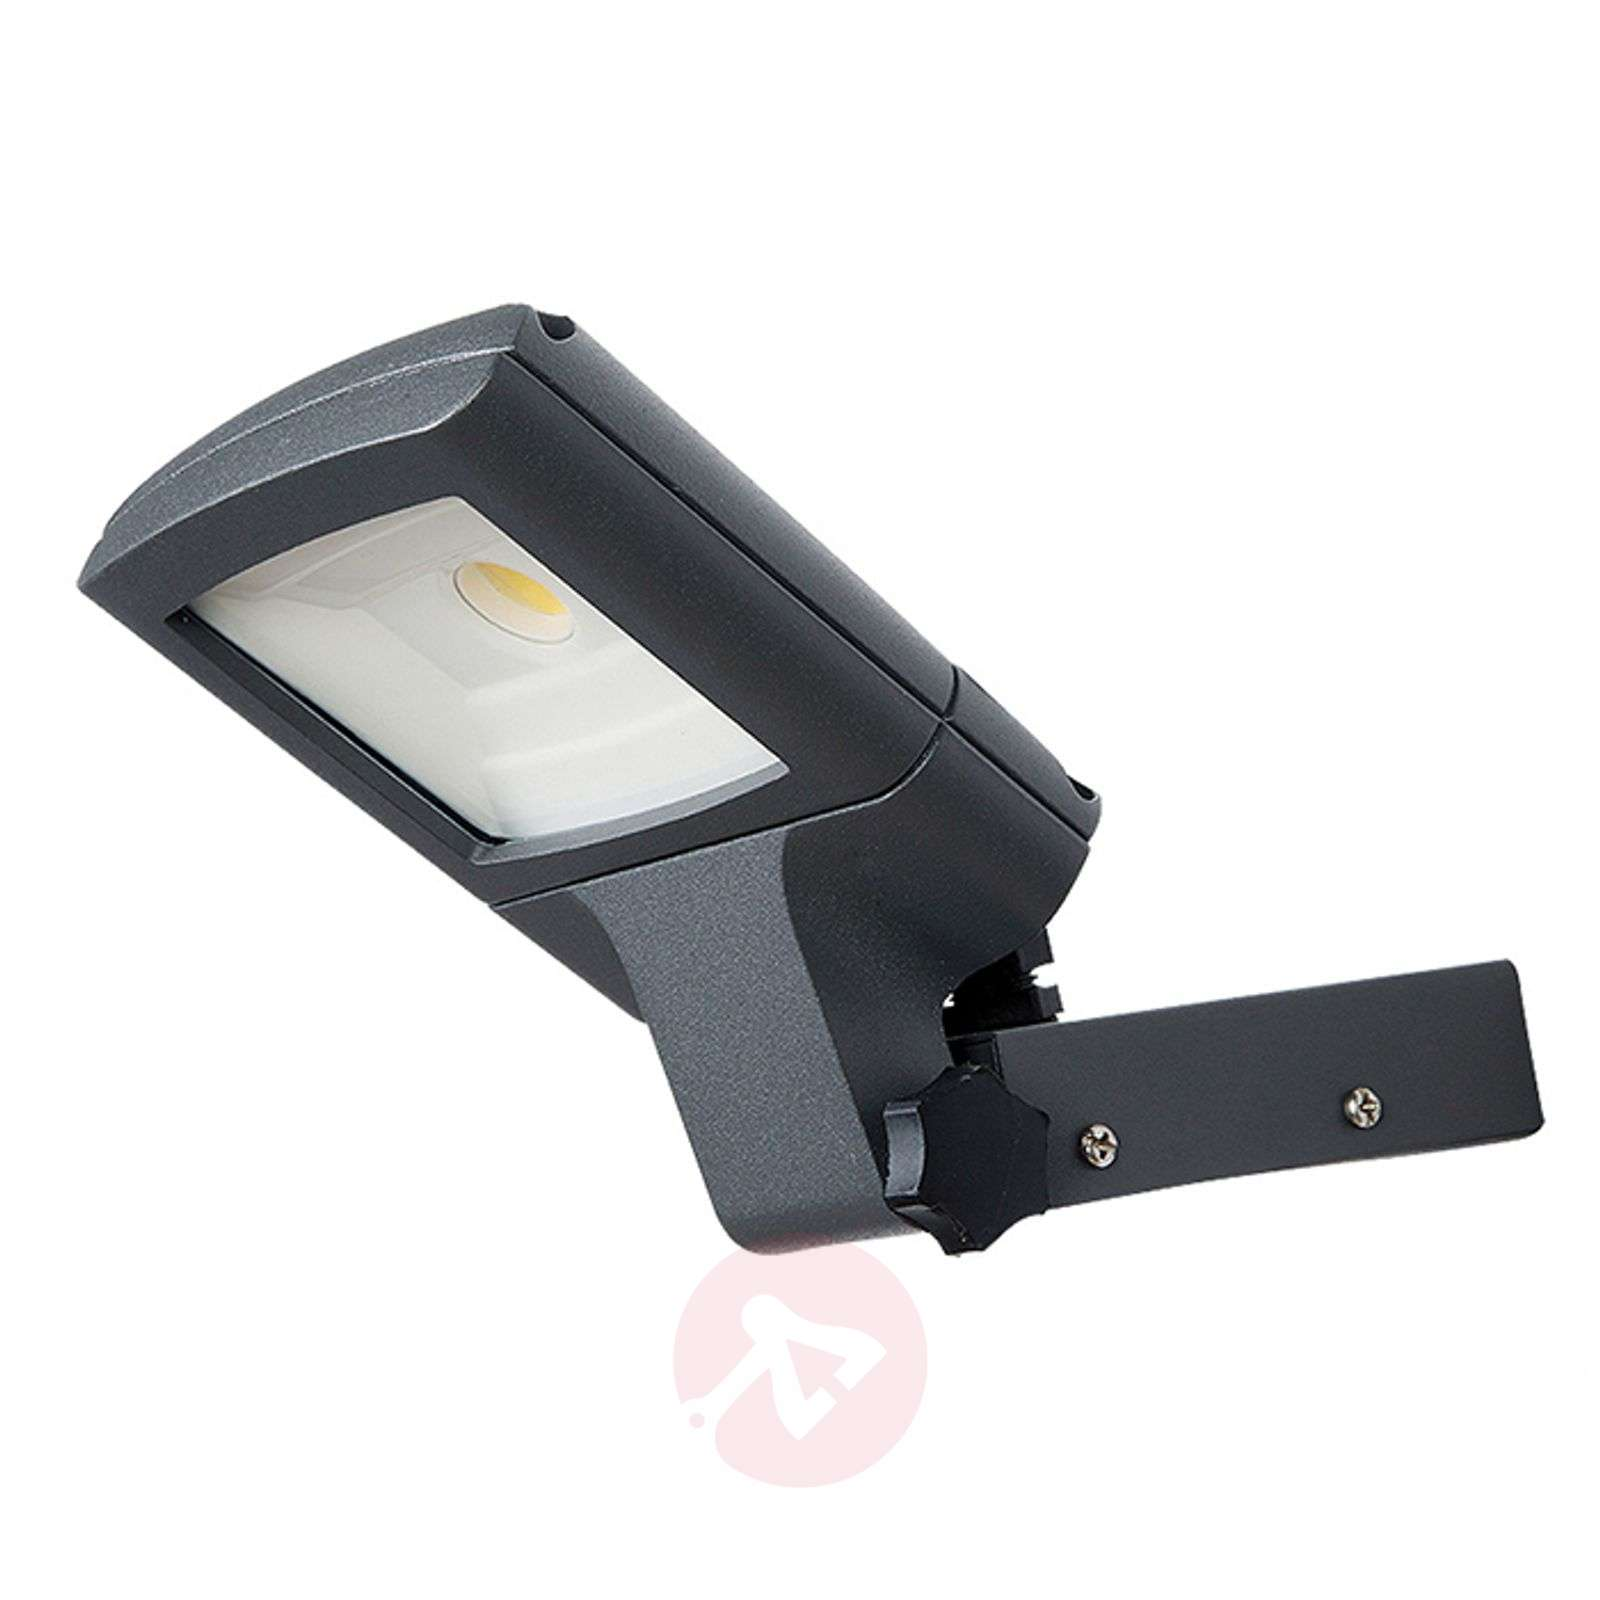 Faretto da esterni Front con LED IP54-3006212-01